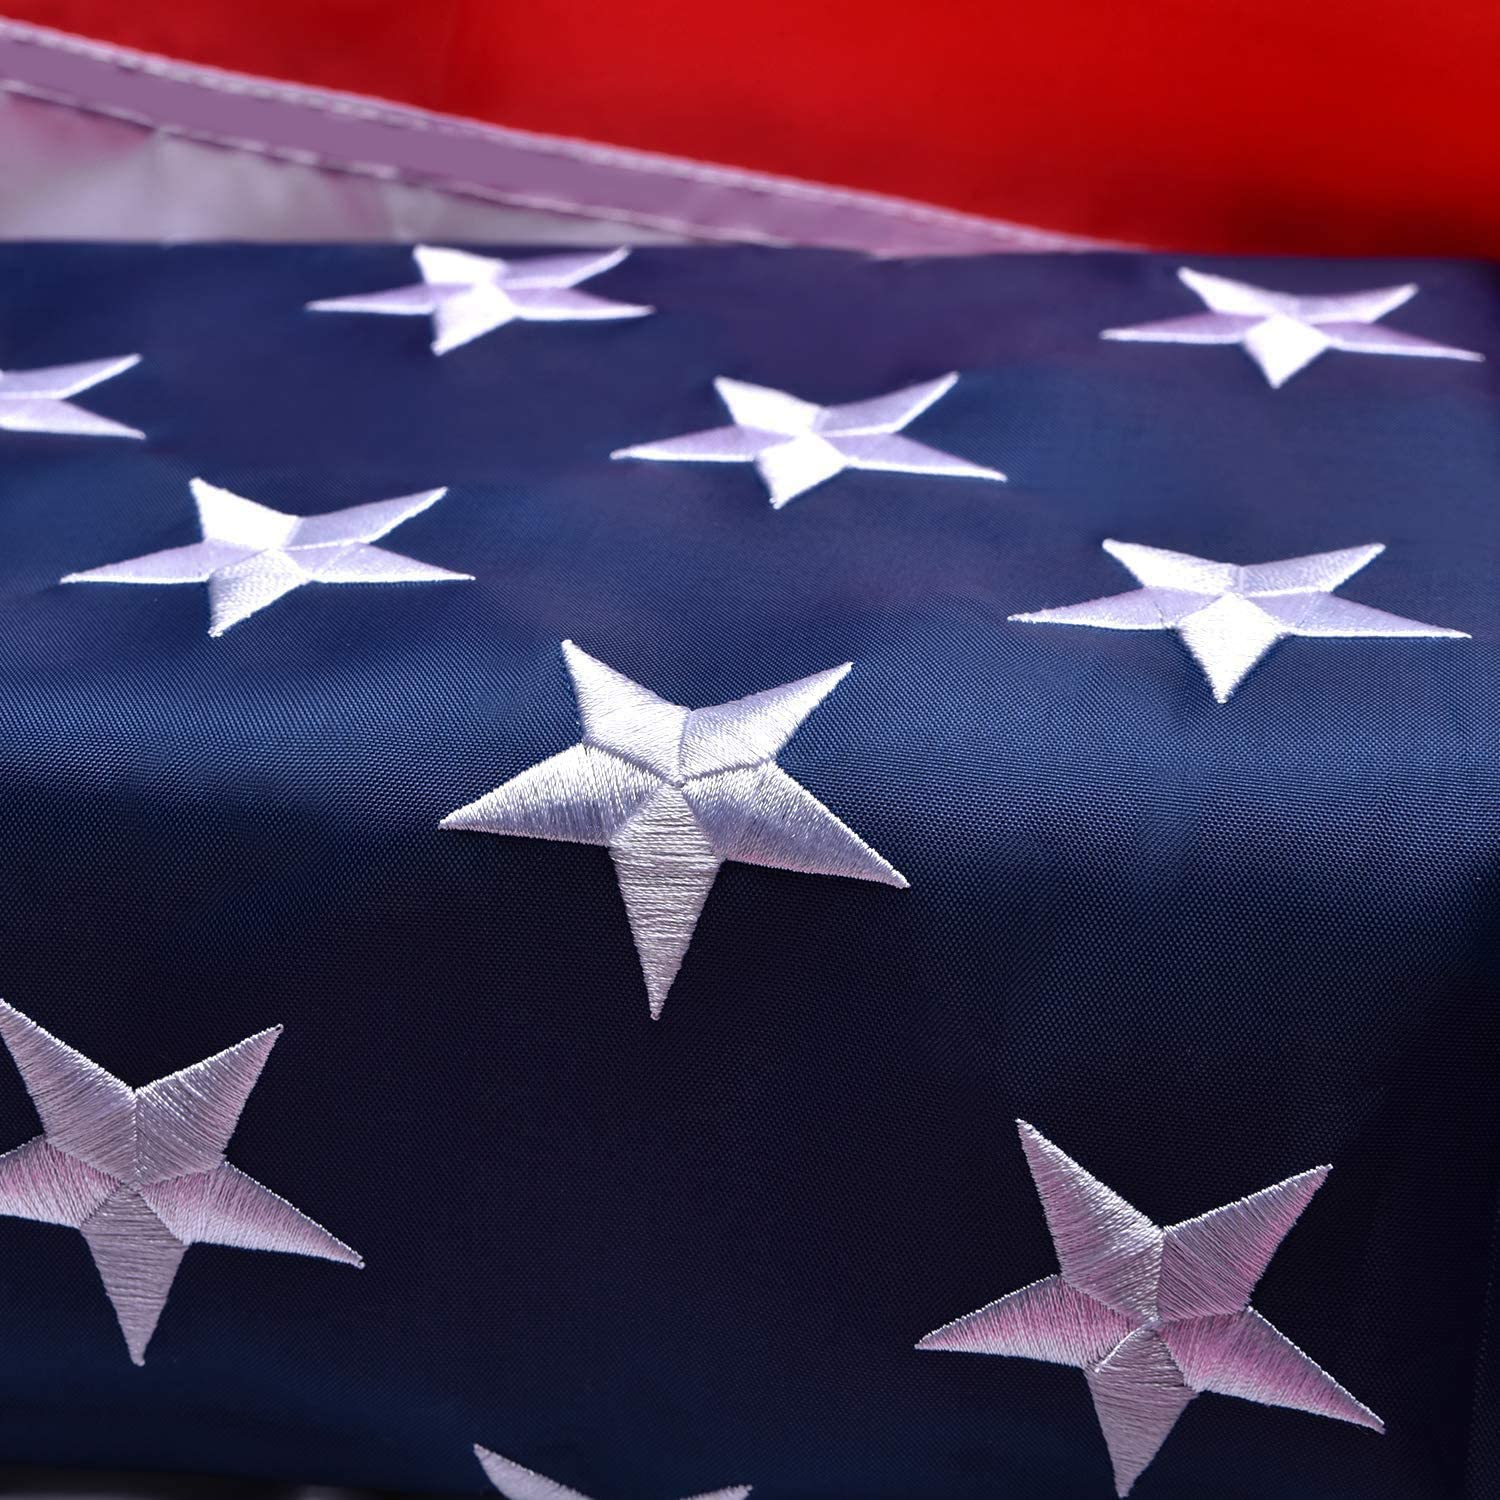 American Flag 3x5 Outdoor, Heavyweight Nylon US Flags 3x5 Outdoor, with Stitched Stripes Embroidered Stars, Brass Grommets, USA Flag Built for Outdoor Use